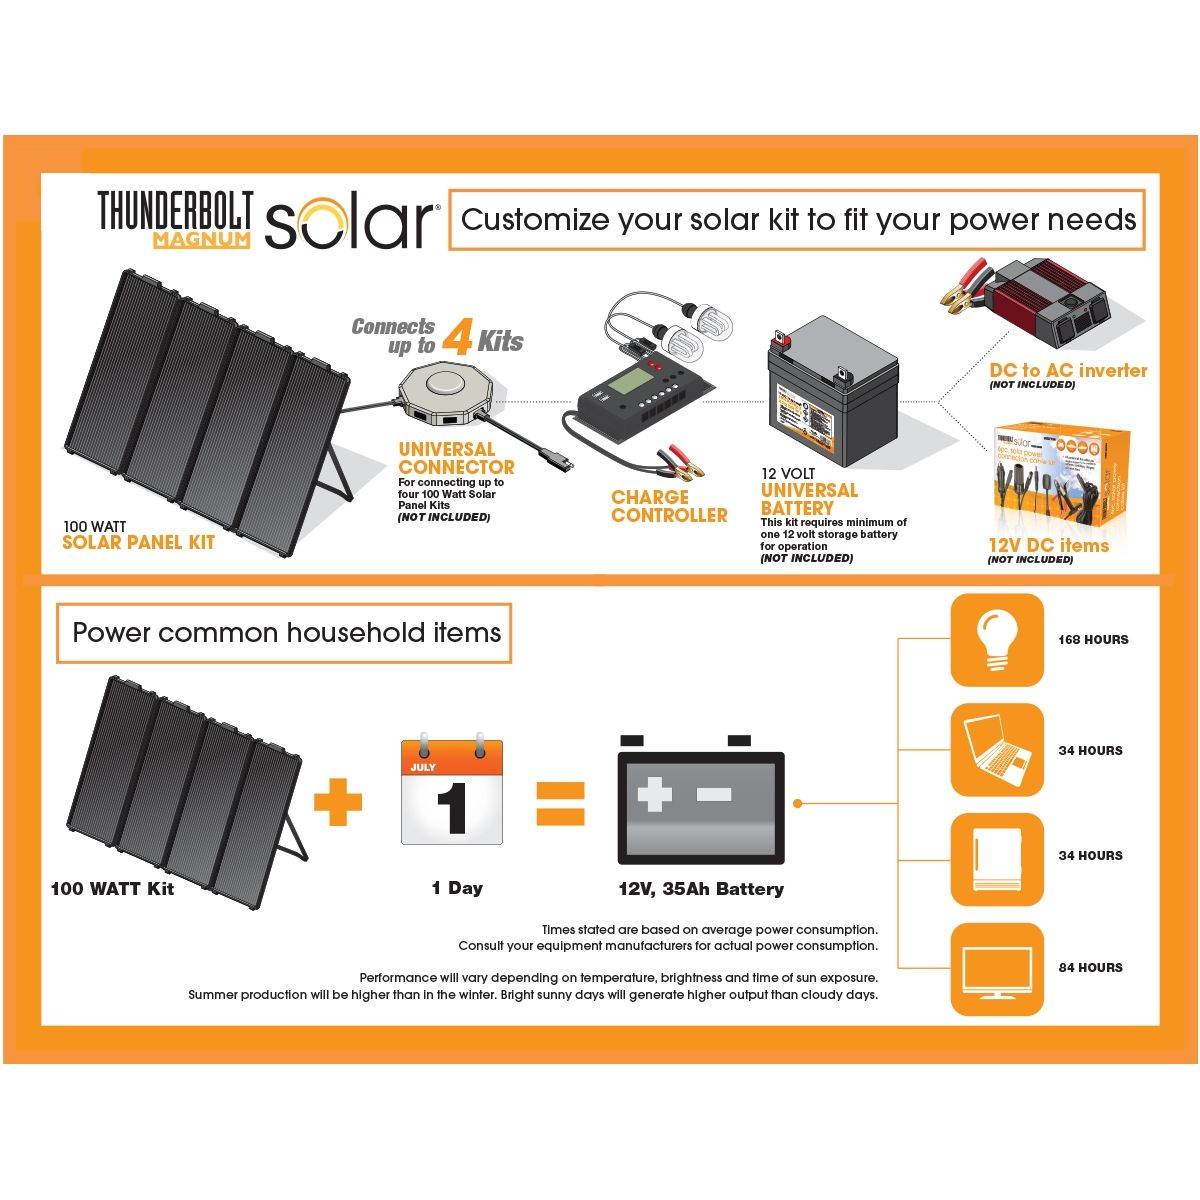 100 Watt Solar Panel Kit Solar Energy Kits 100 Watt Solar Panel Solar Panel Kits